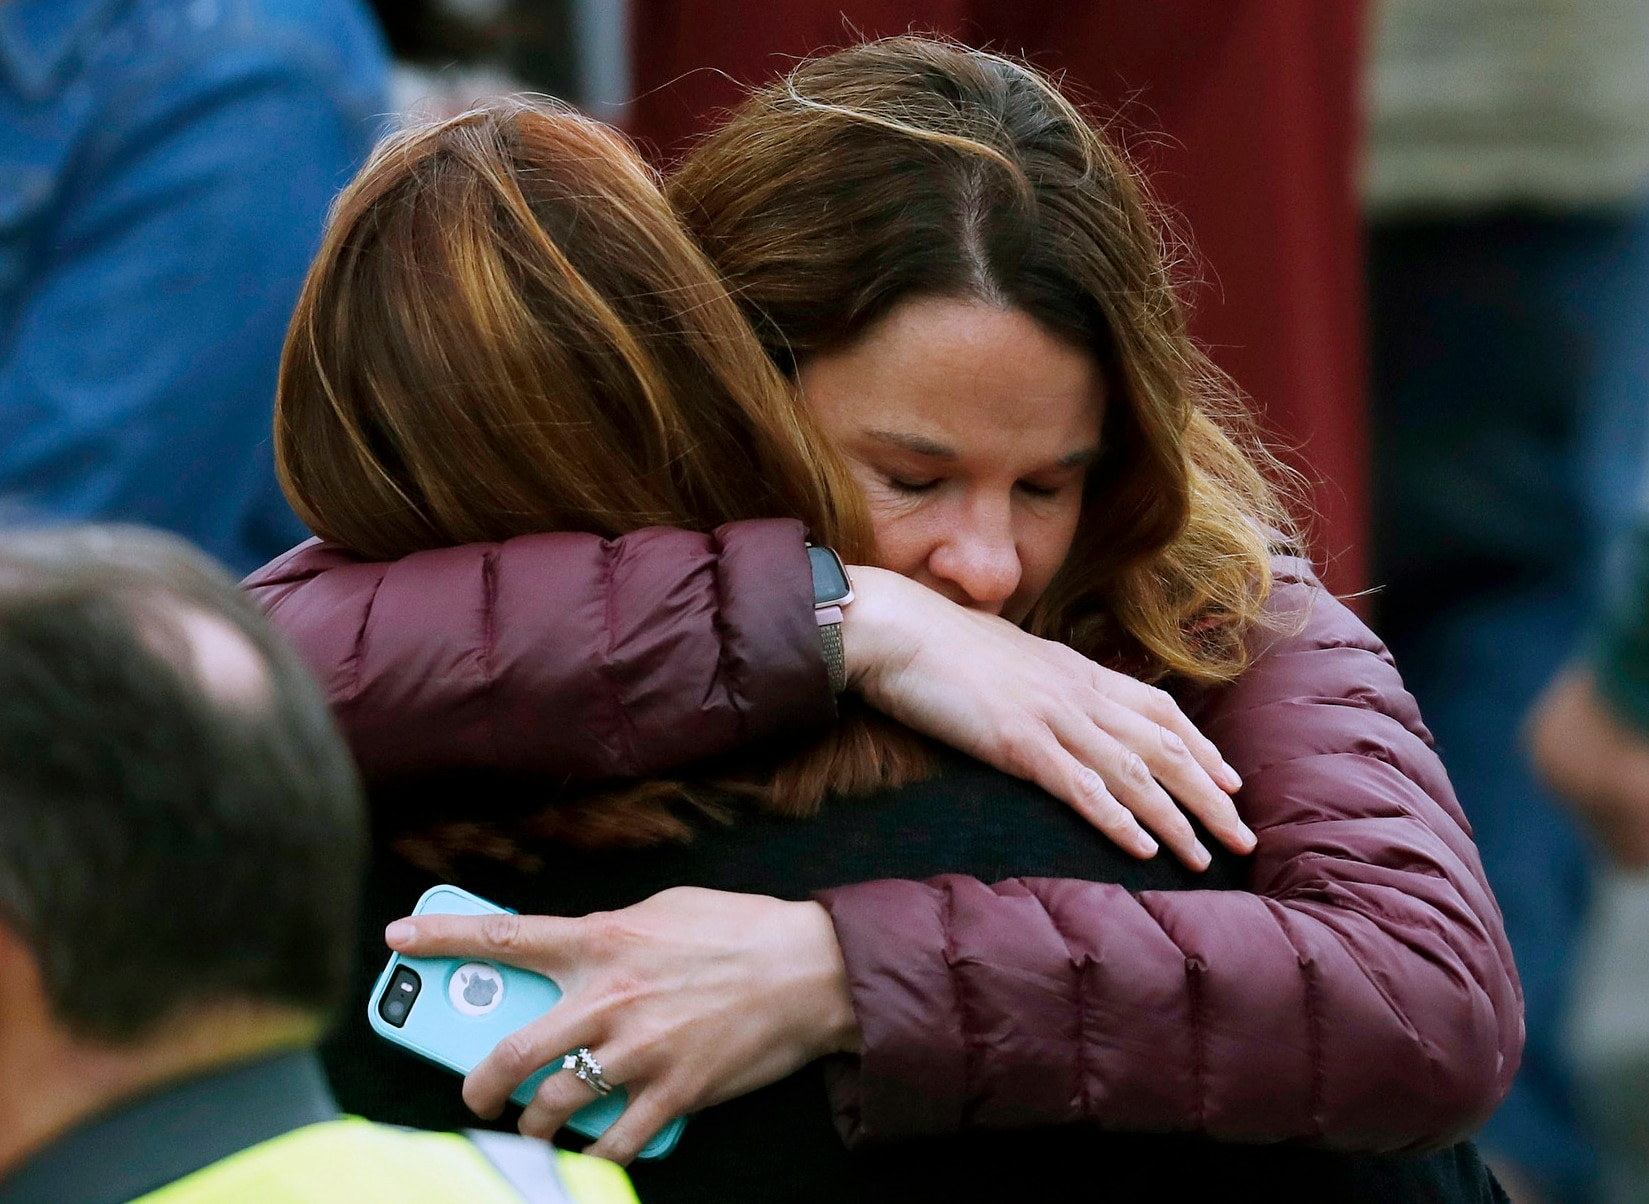 Parents hug as they wait for their children after a shooting at a suburban Denver school.